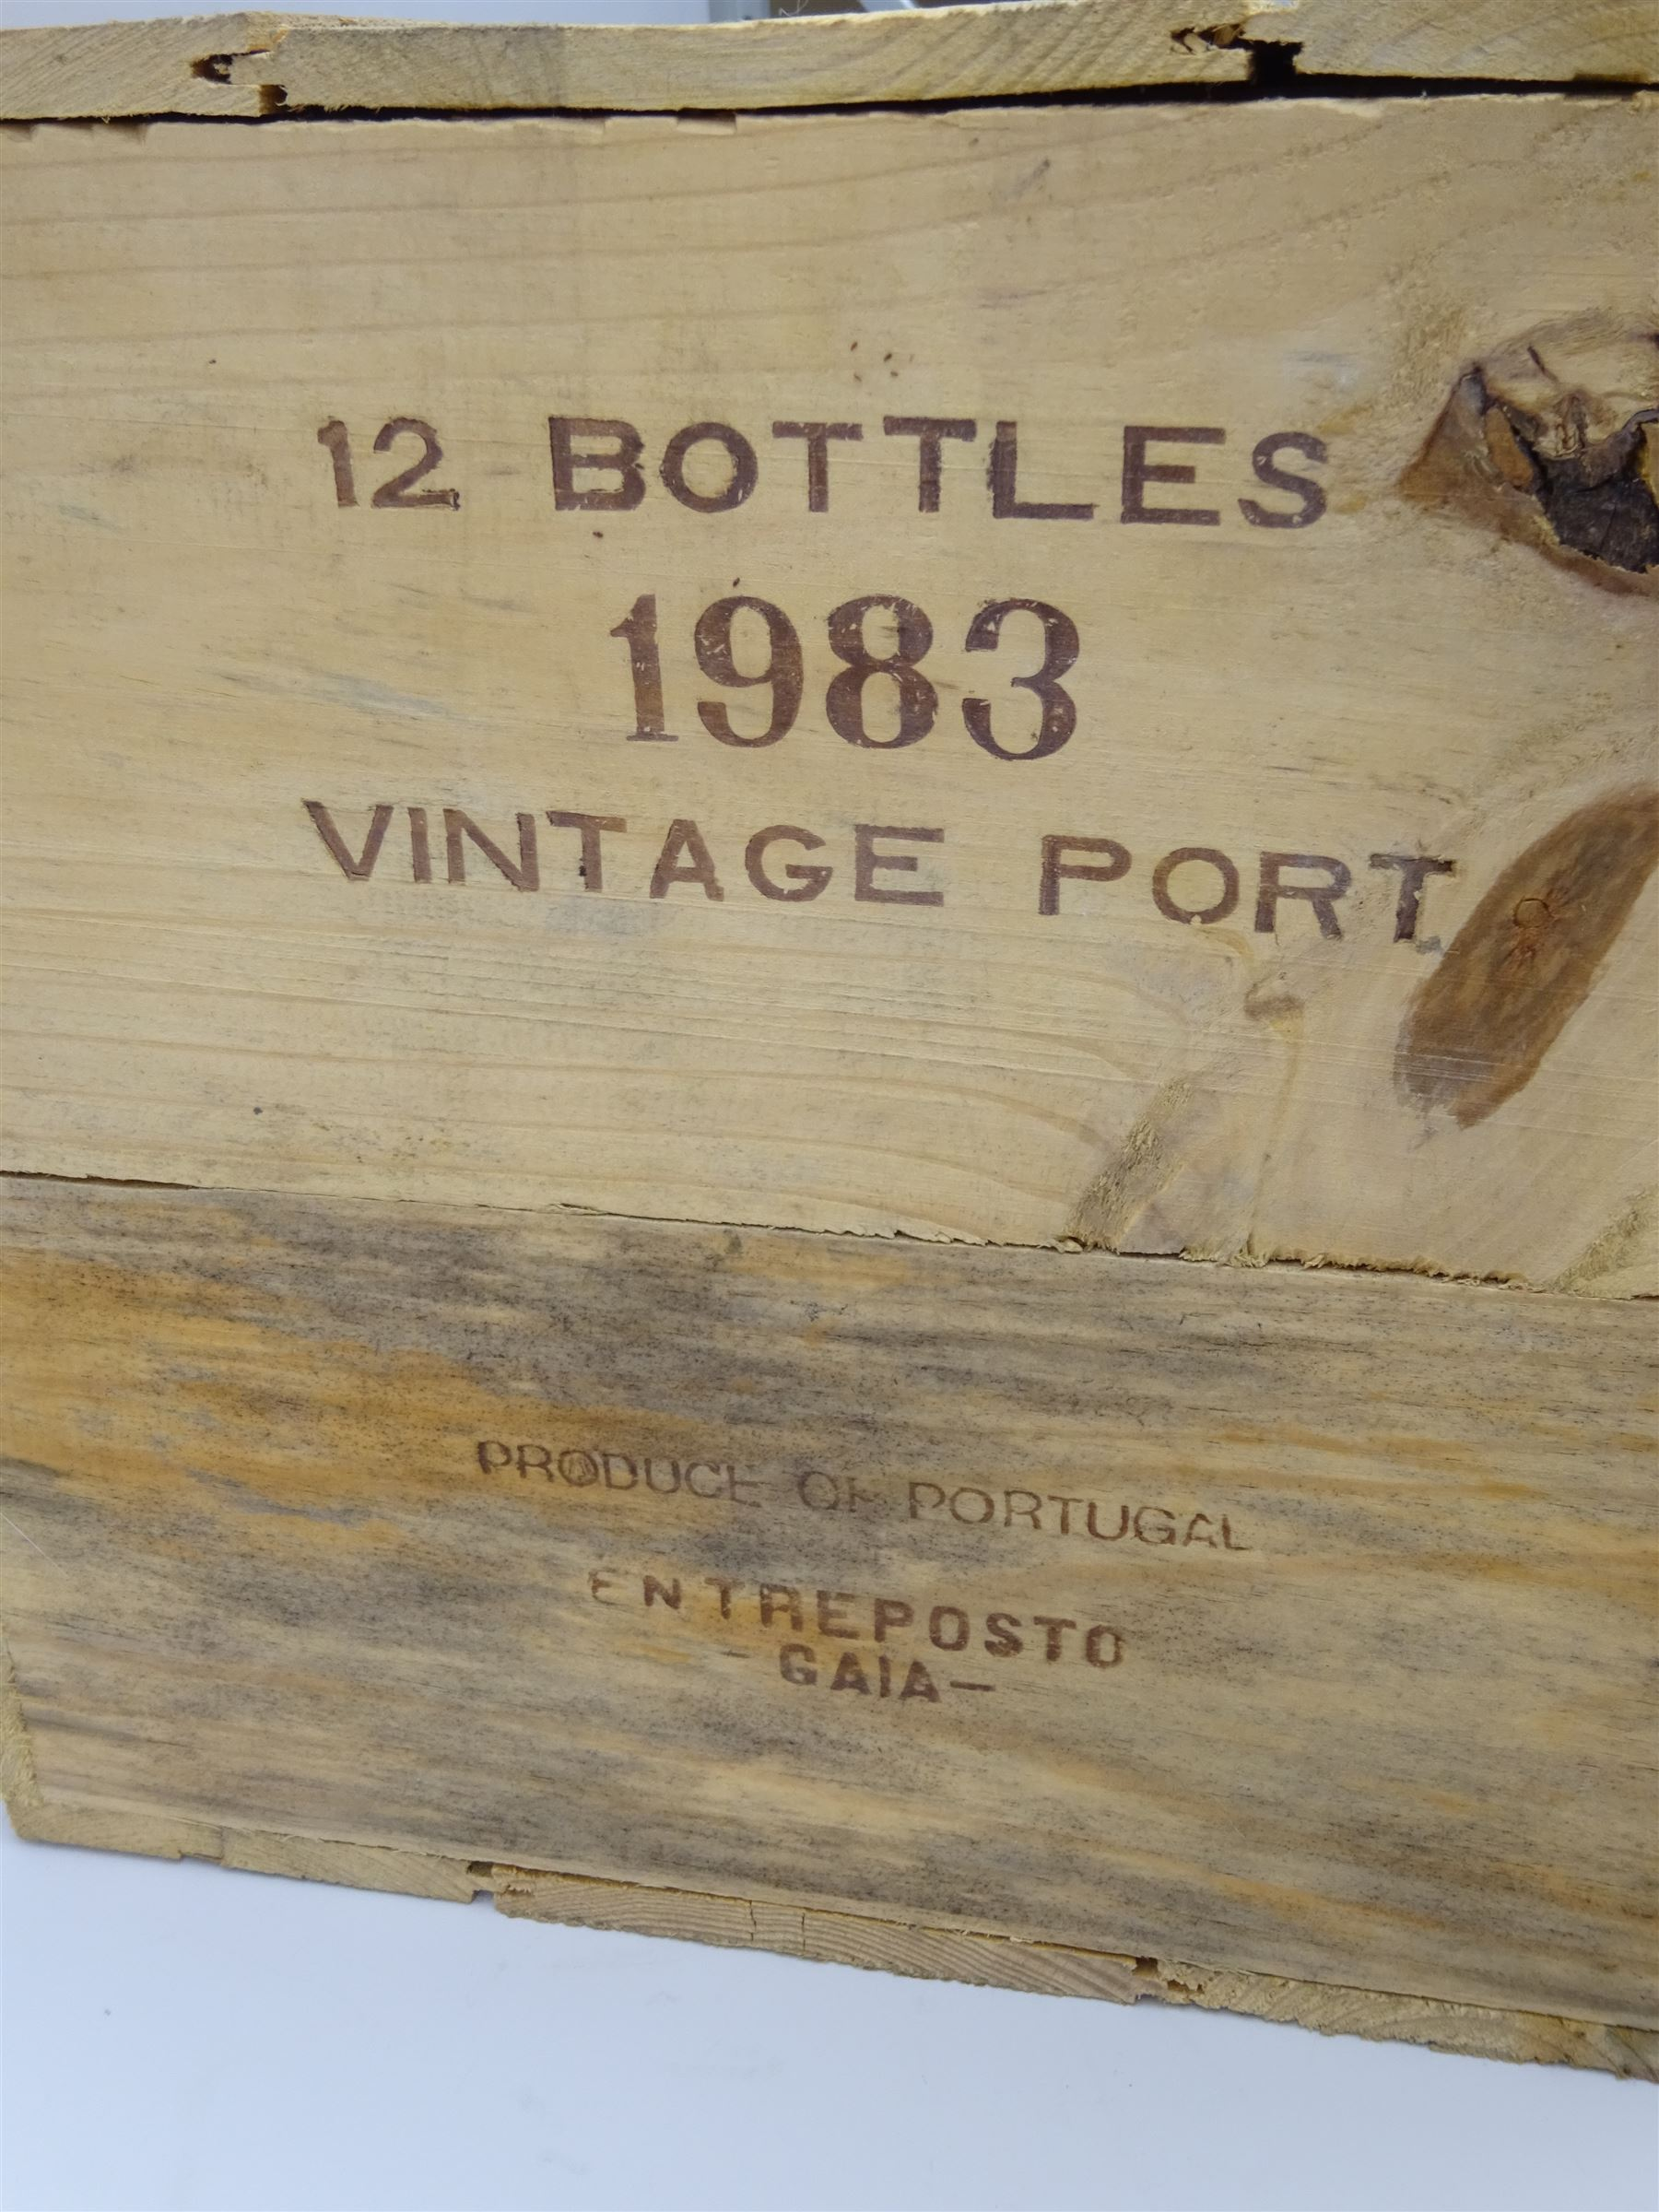 Dow's 1983 vintage port - Image 3 of 5